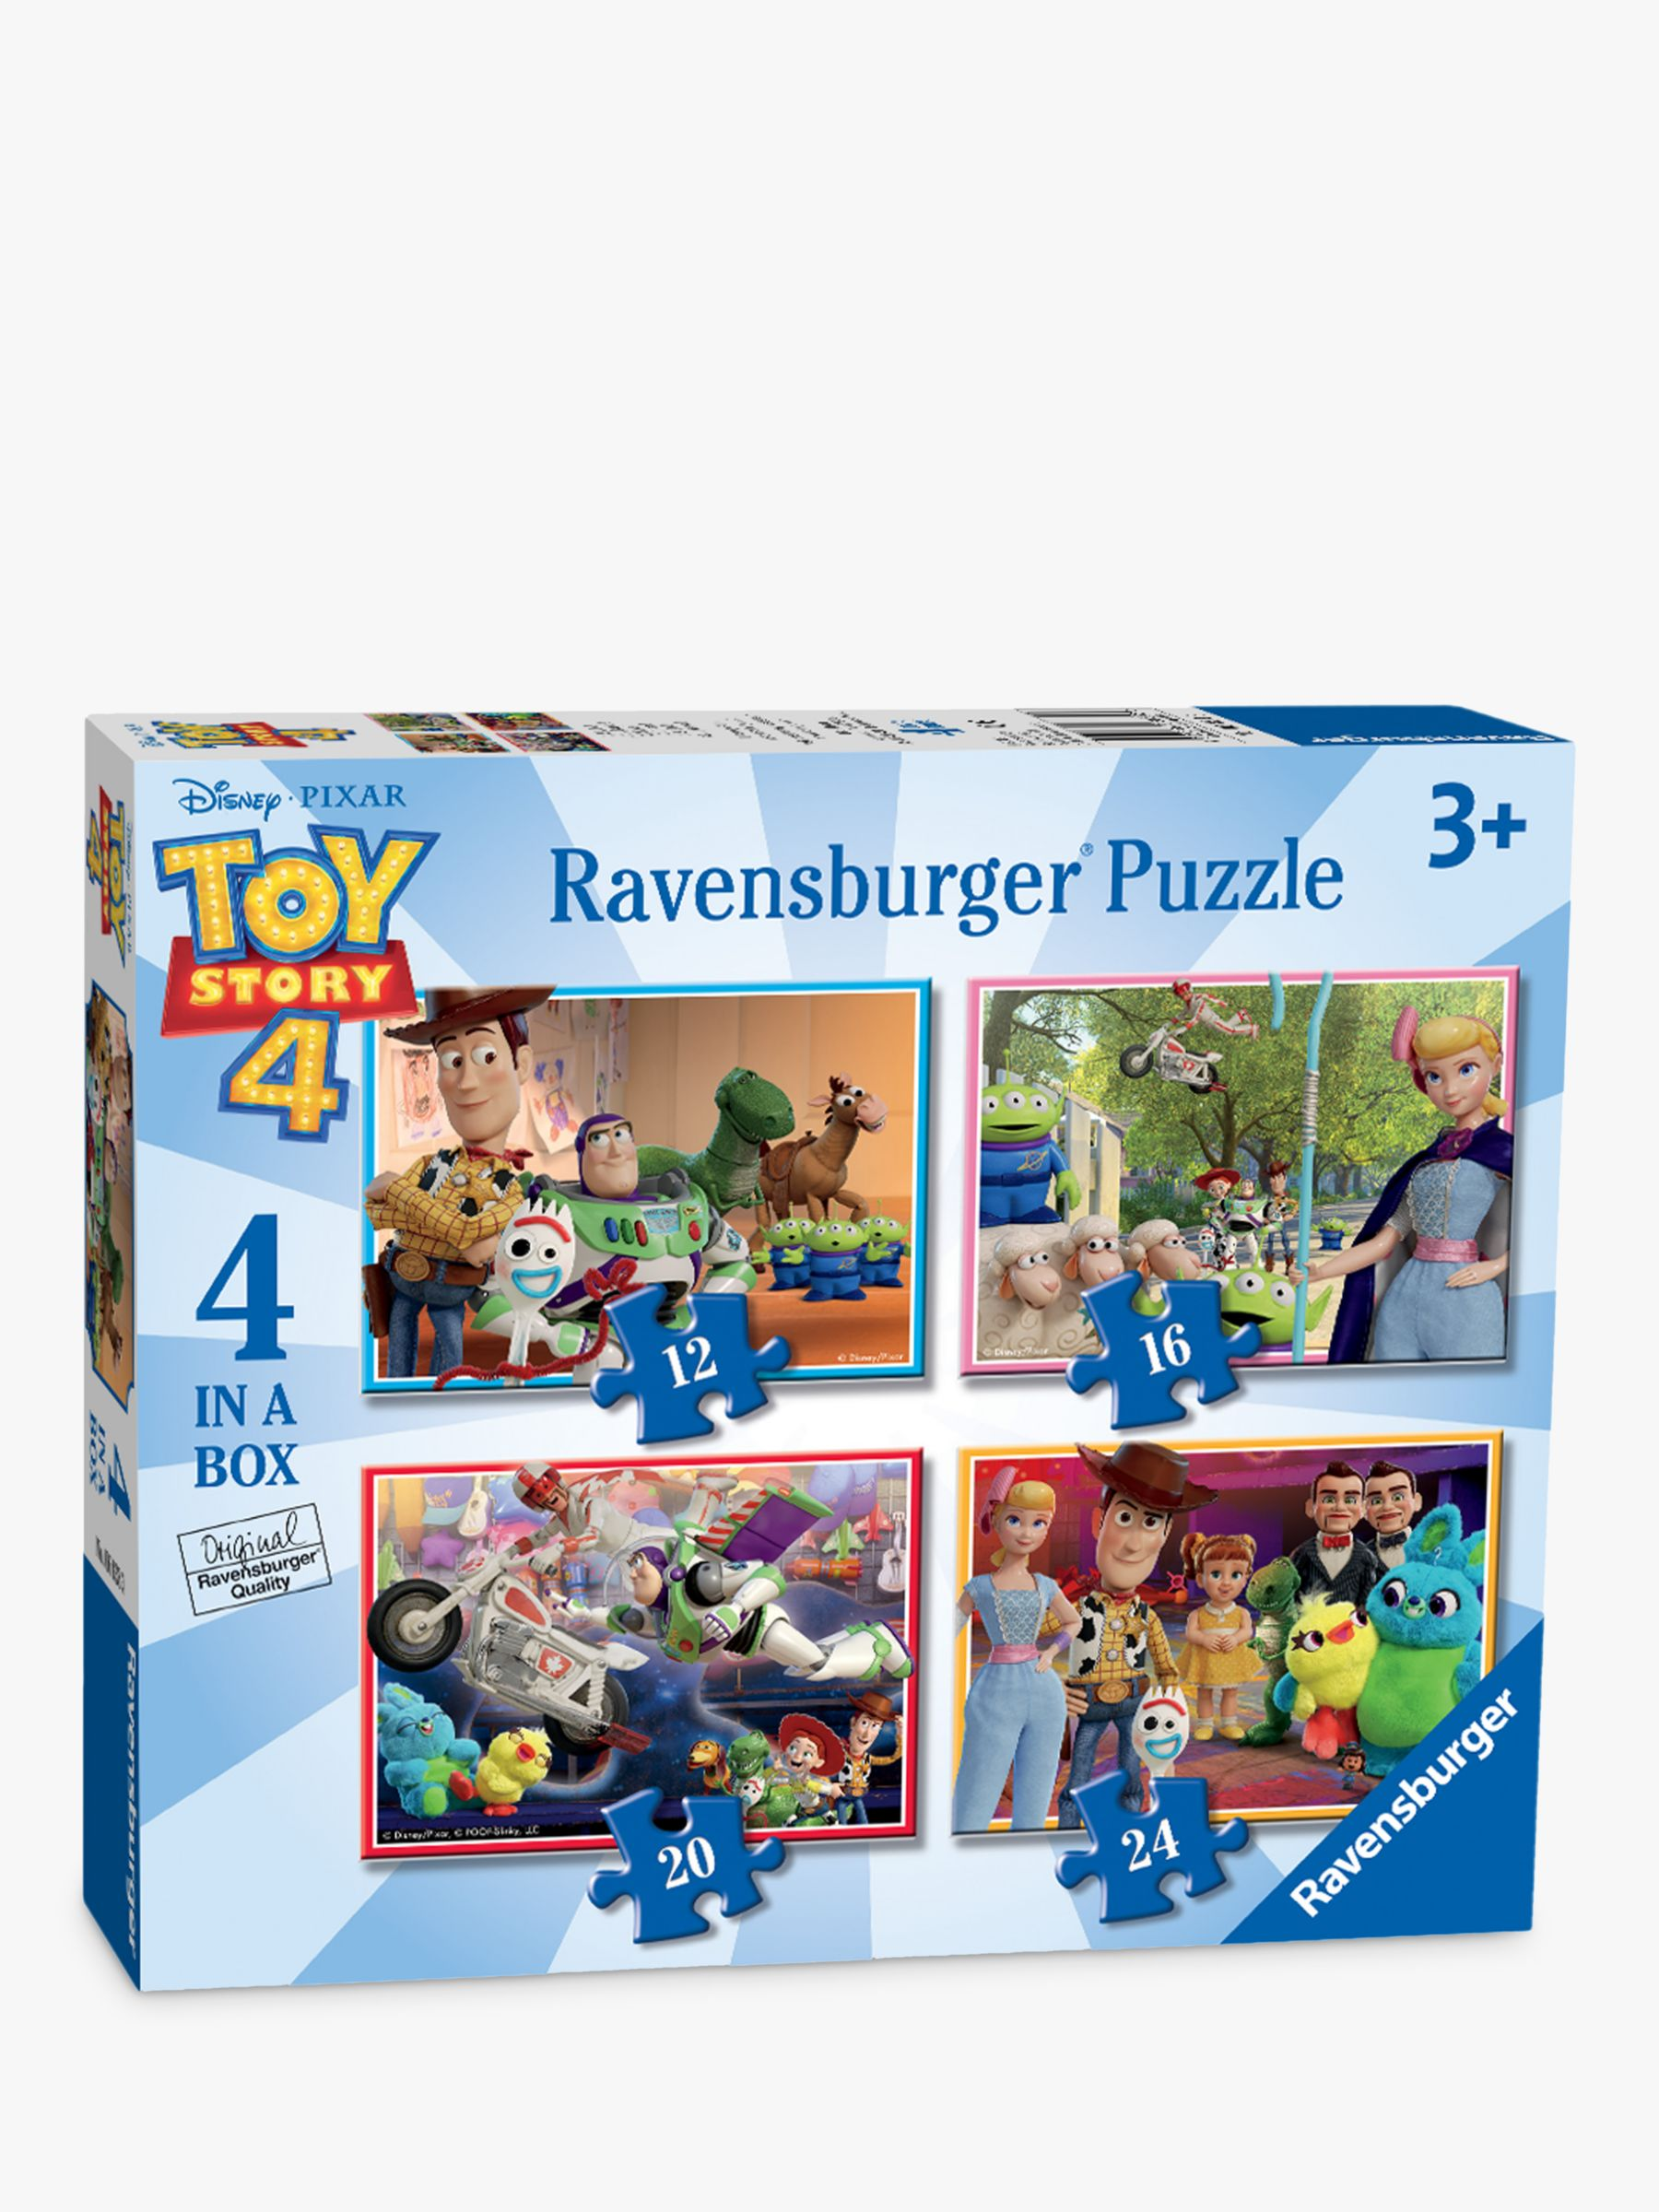 Ravensburger Ravensburger Toy Story 4 4 in a Box Jigsaw Puzzle